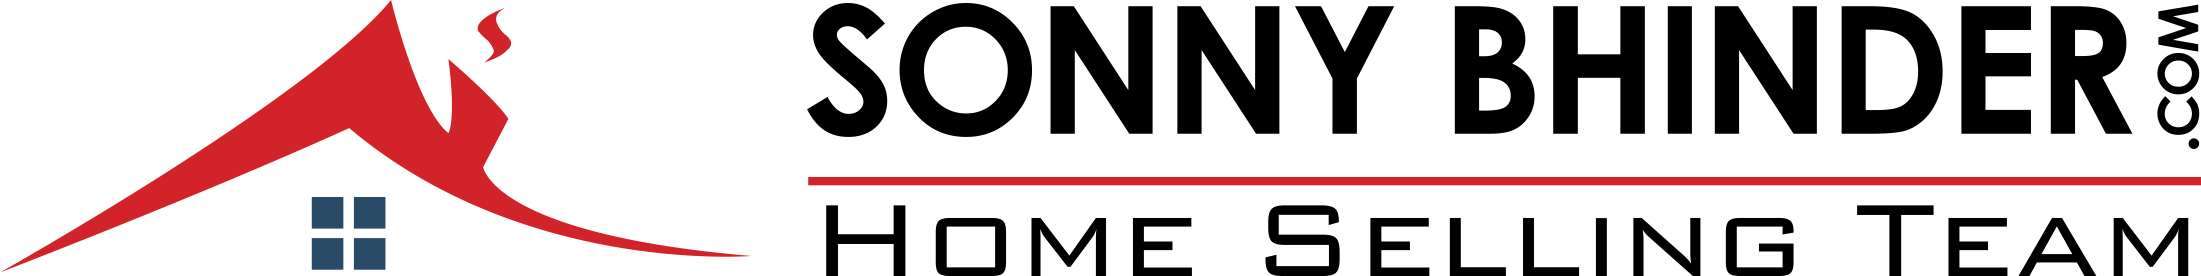 Sonny Bhinder Home Selling Team logo